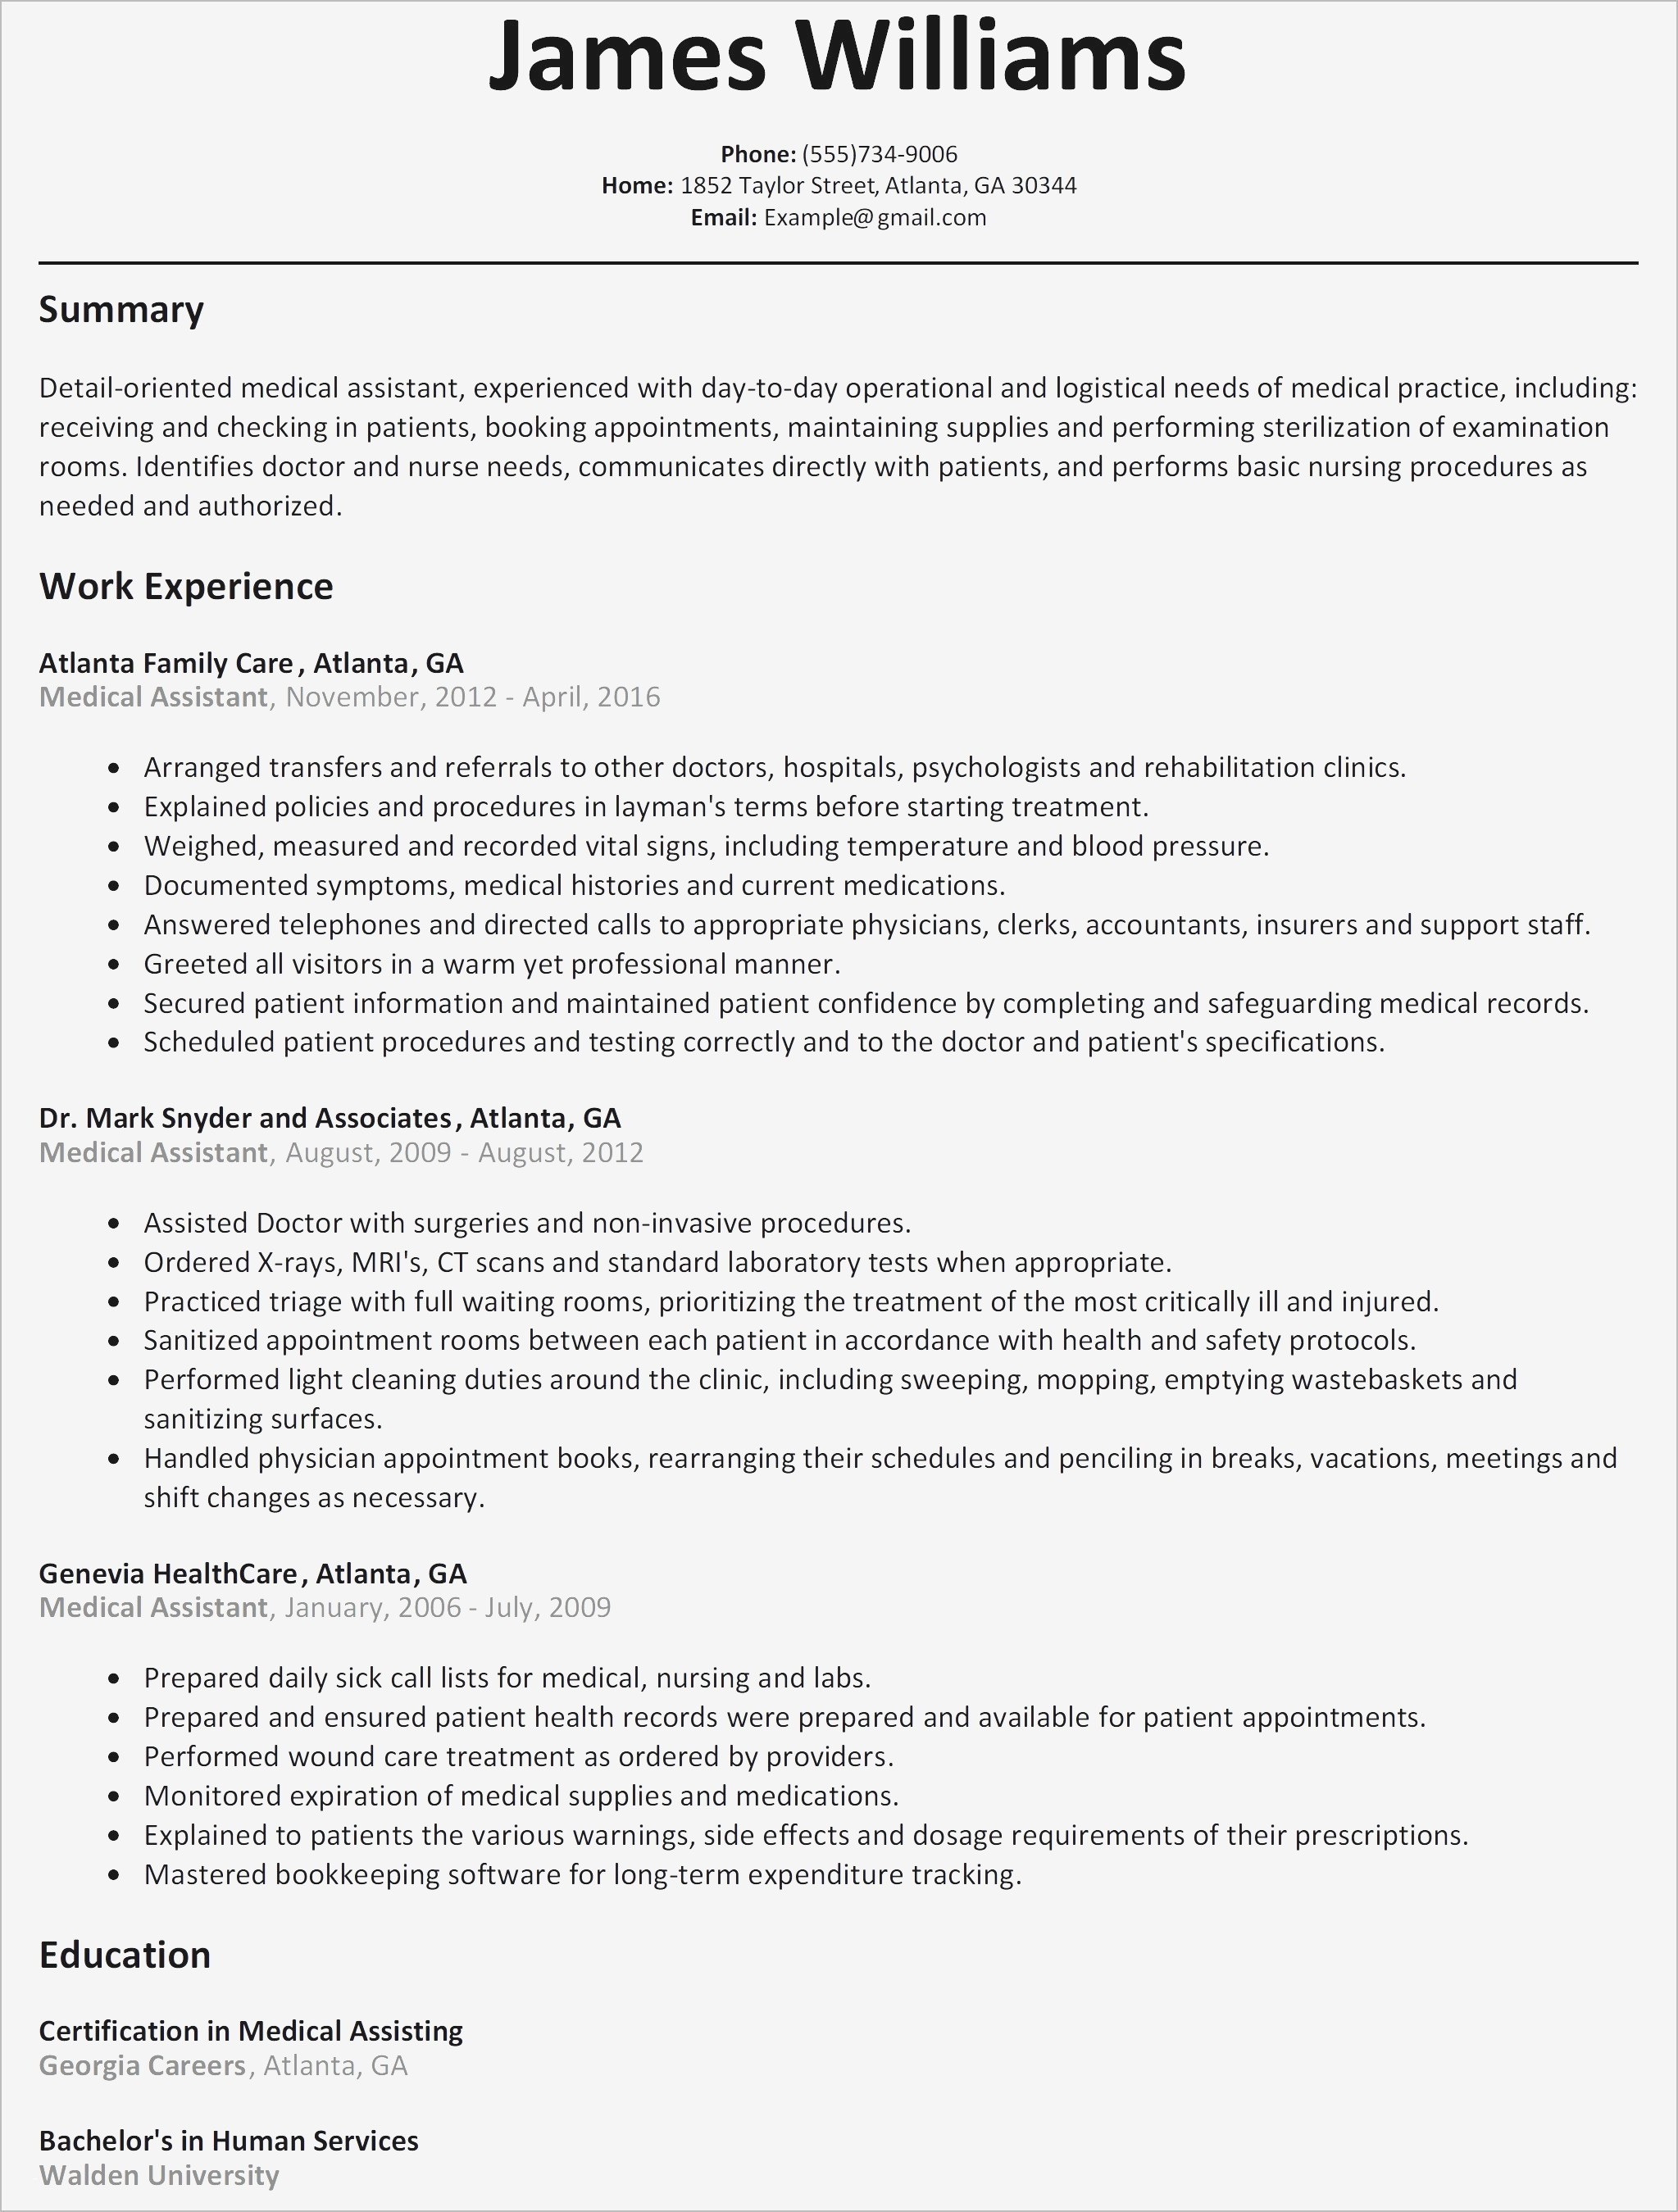 Angularjs Resume Template - Best Sales Resume Elegant Sales associate Resume New Template